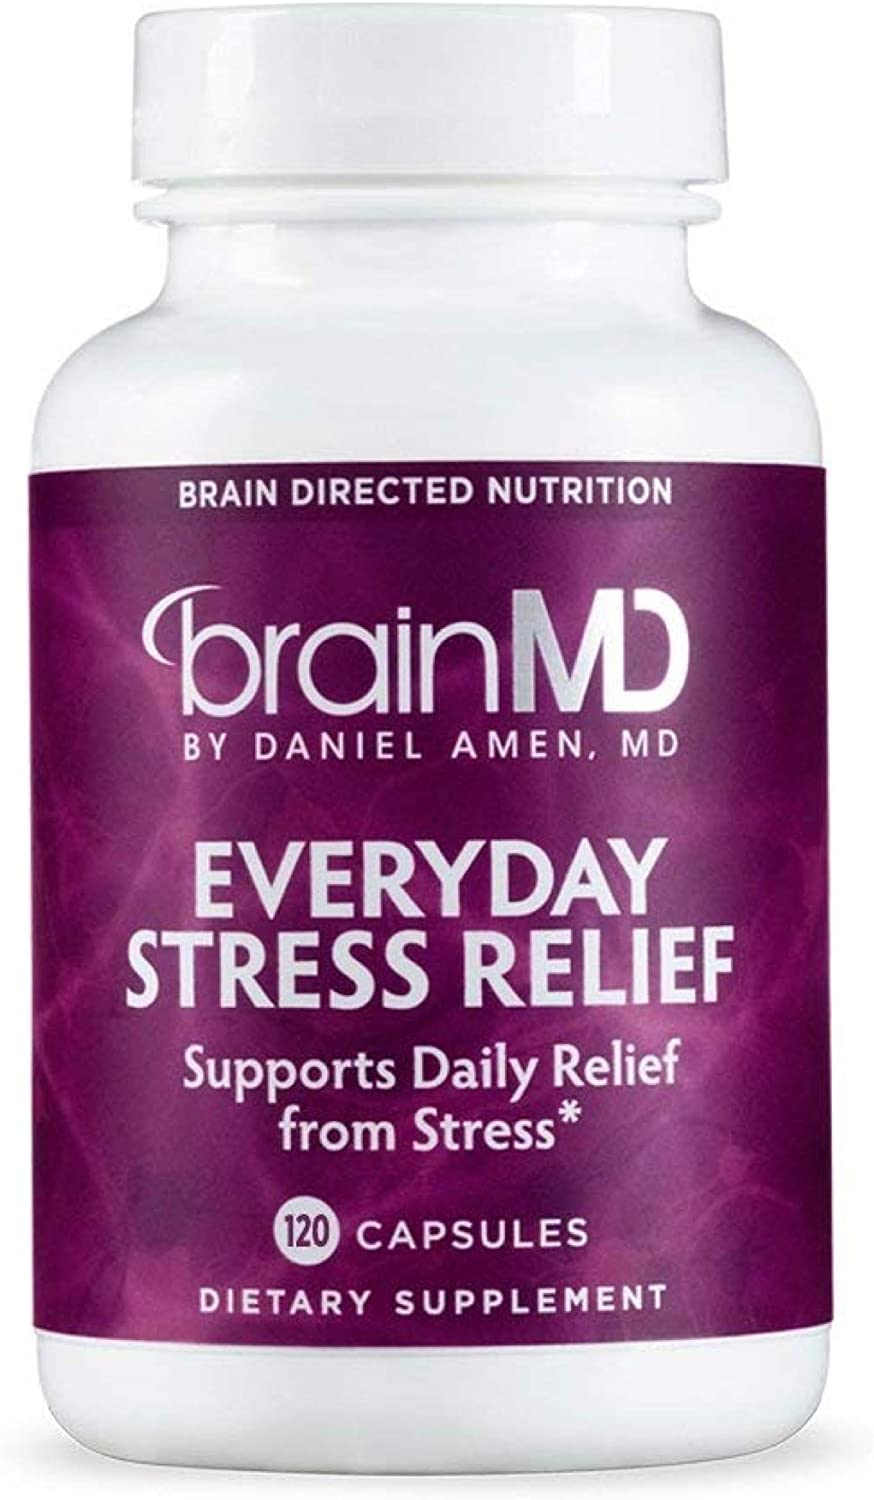 Dr. Amen brainMD Everyday Stress Relief – 120 Capsules – Mood Adrenal Support Supplement, Promotes Calm, Relaxation Focus, Non-Drowsy – Gluten-Free – 30 Servings